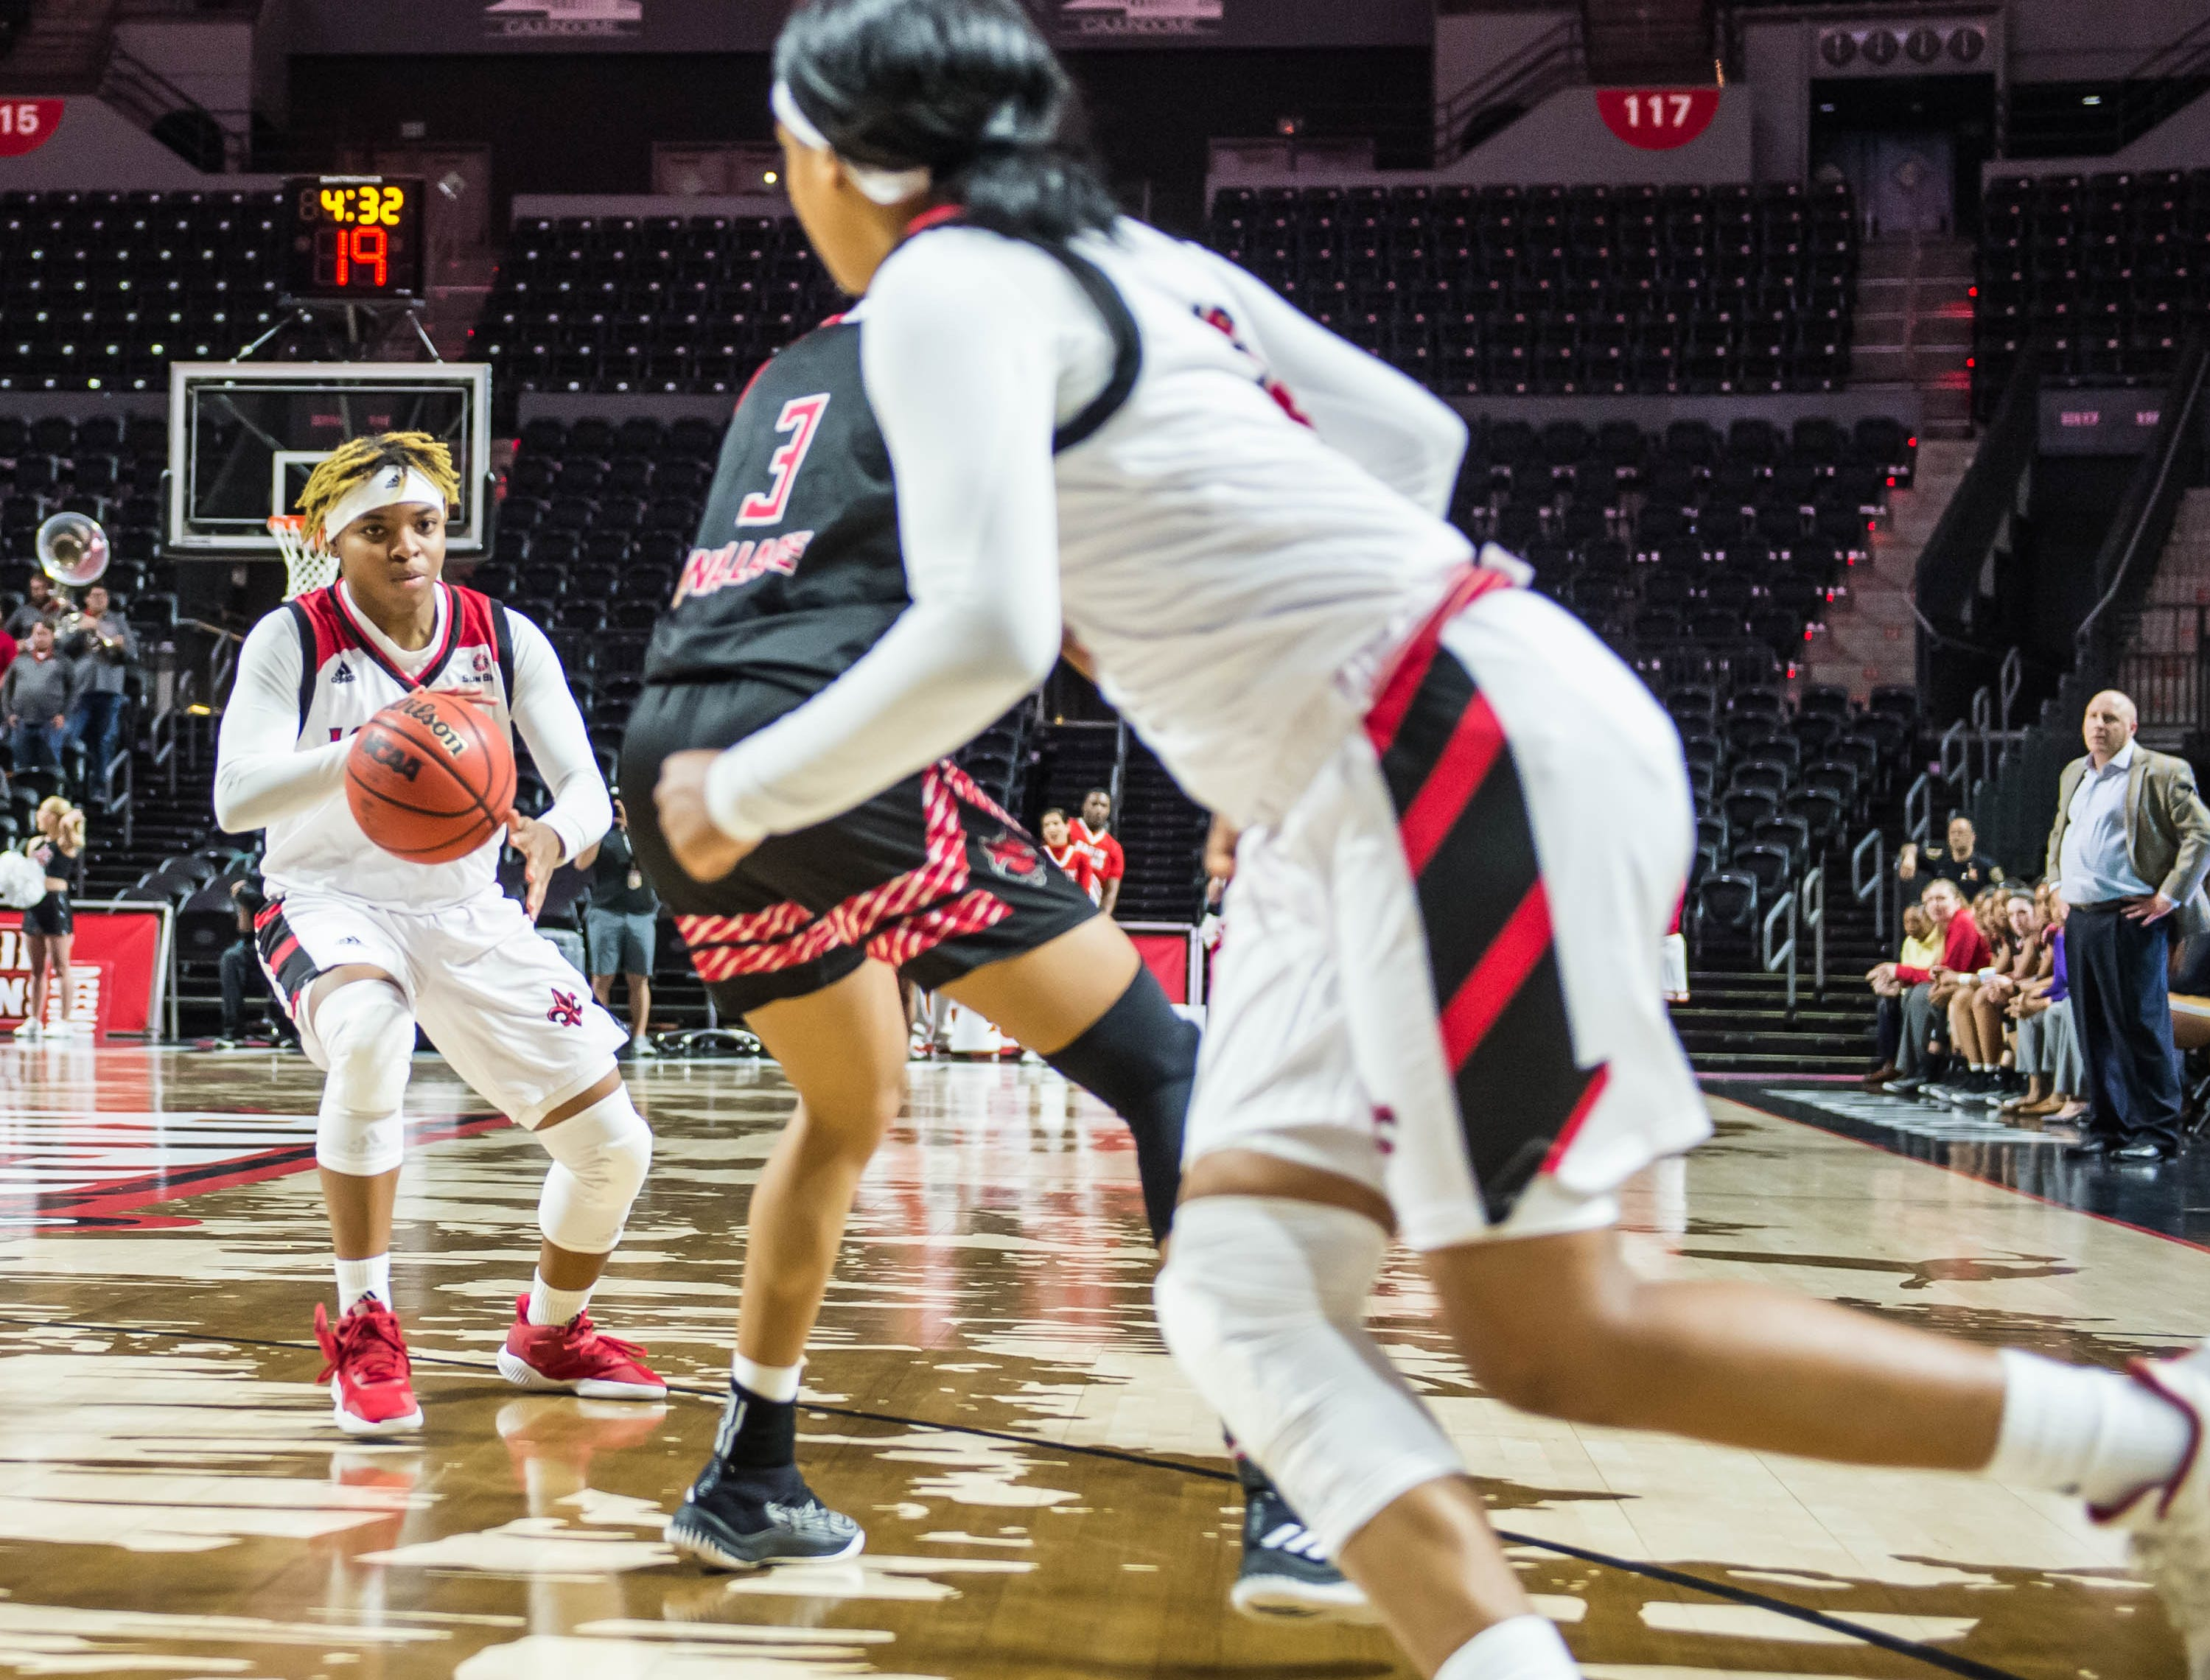 Cajuns guard Diamond Morrison (15) looks to pass the ball as the Cajuns women's basketball team plays the Arkansas State Red Wolves at the Cajundome on Saturday, March 9, 2019.